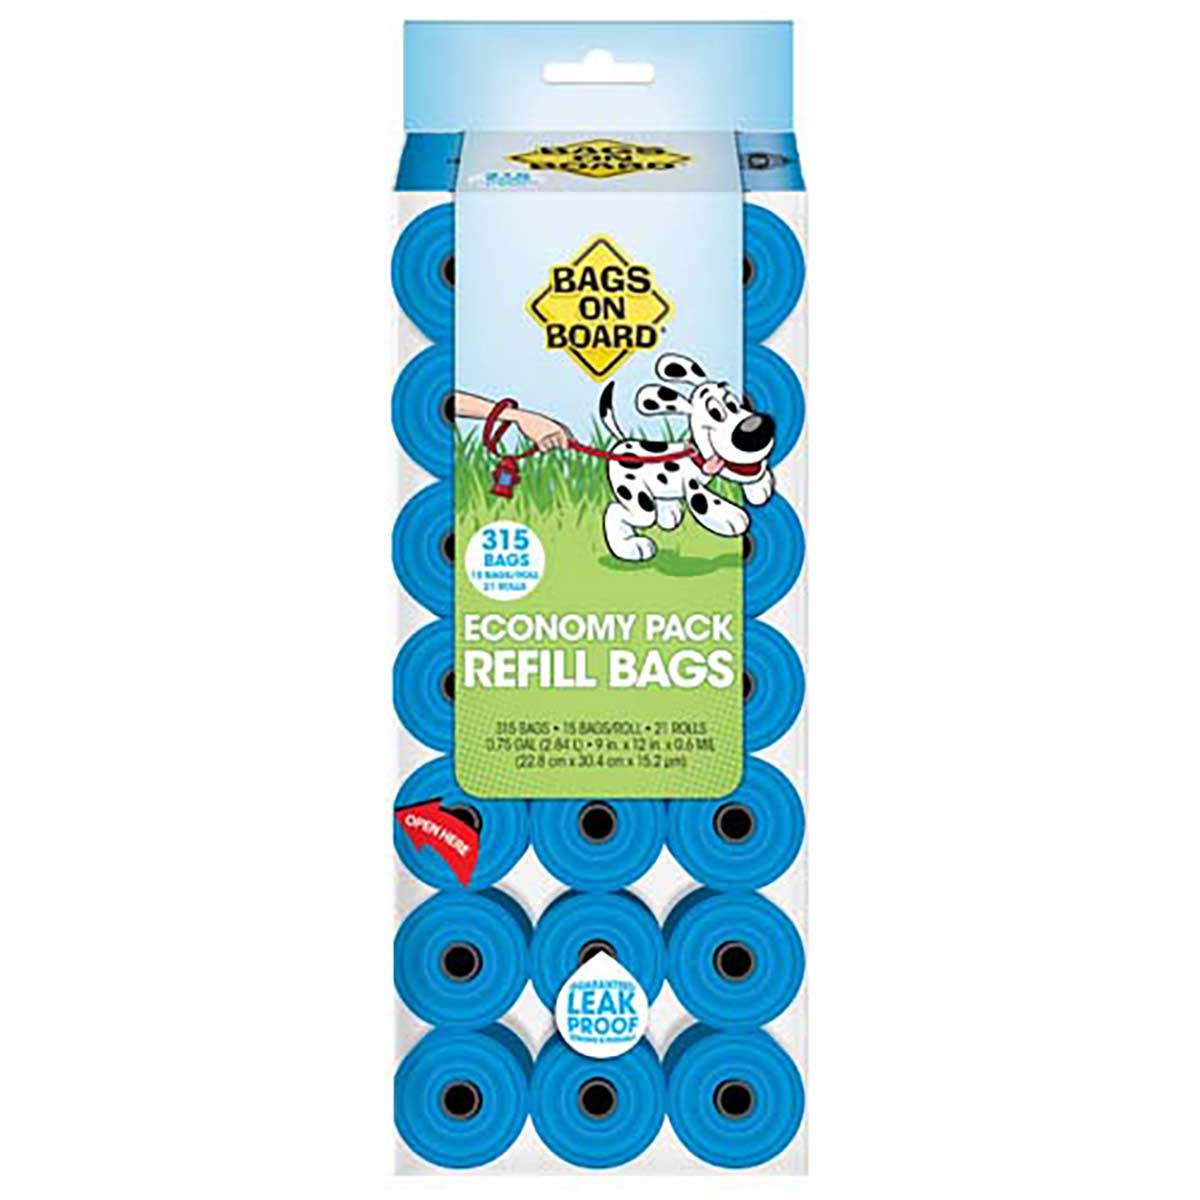 Bags on Board Blue Pantry Pack Poop Bag Refill (315 Bags) Economy Size at Ryan's Pet Supplies